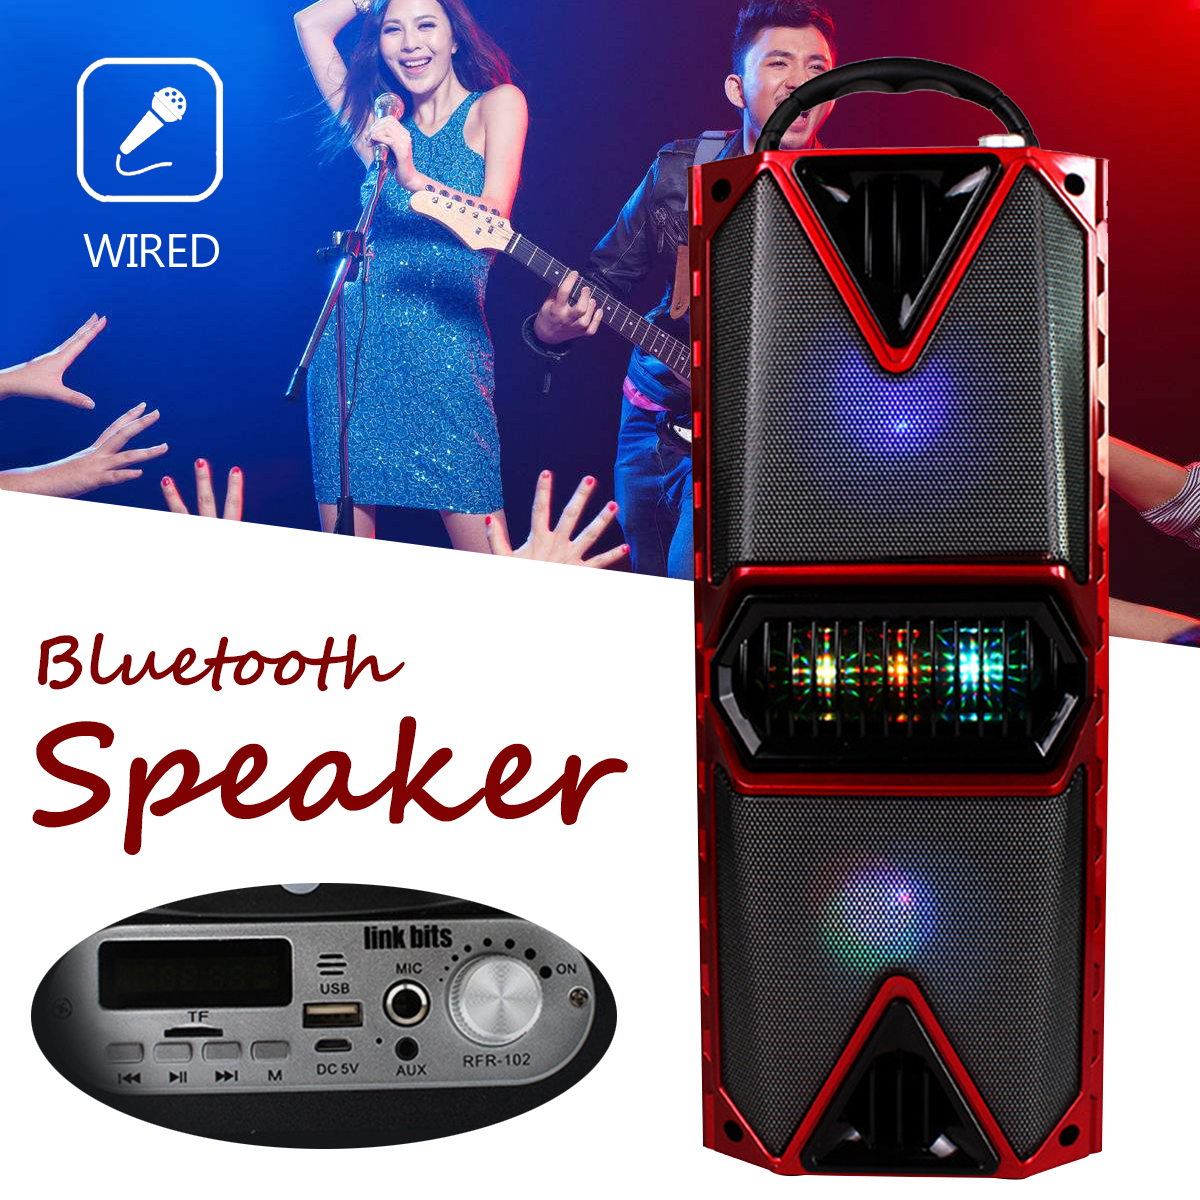 LED Wireless bluetooth Outdoor Car Loud Speaker Treble Bass Hi-Fi Stereo AUX TF